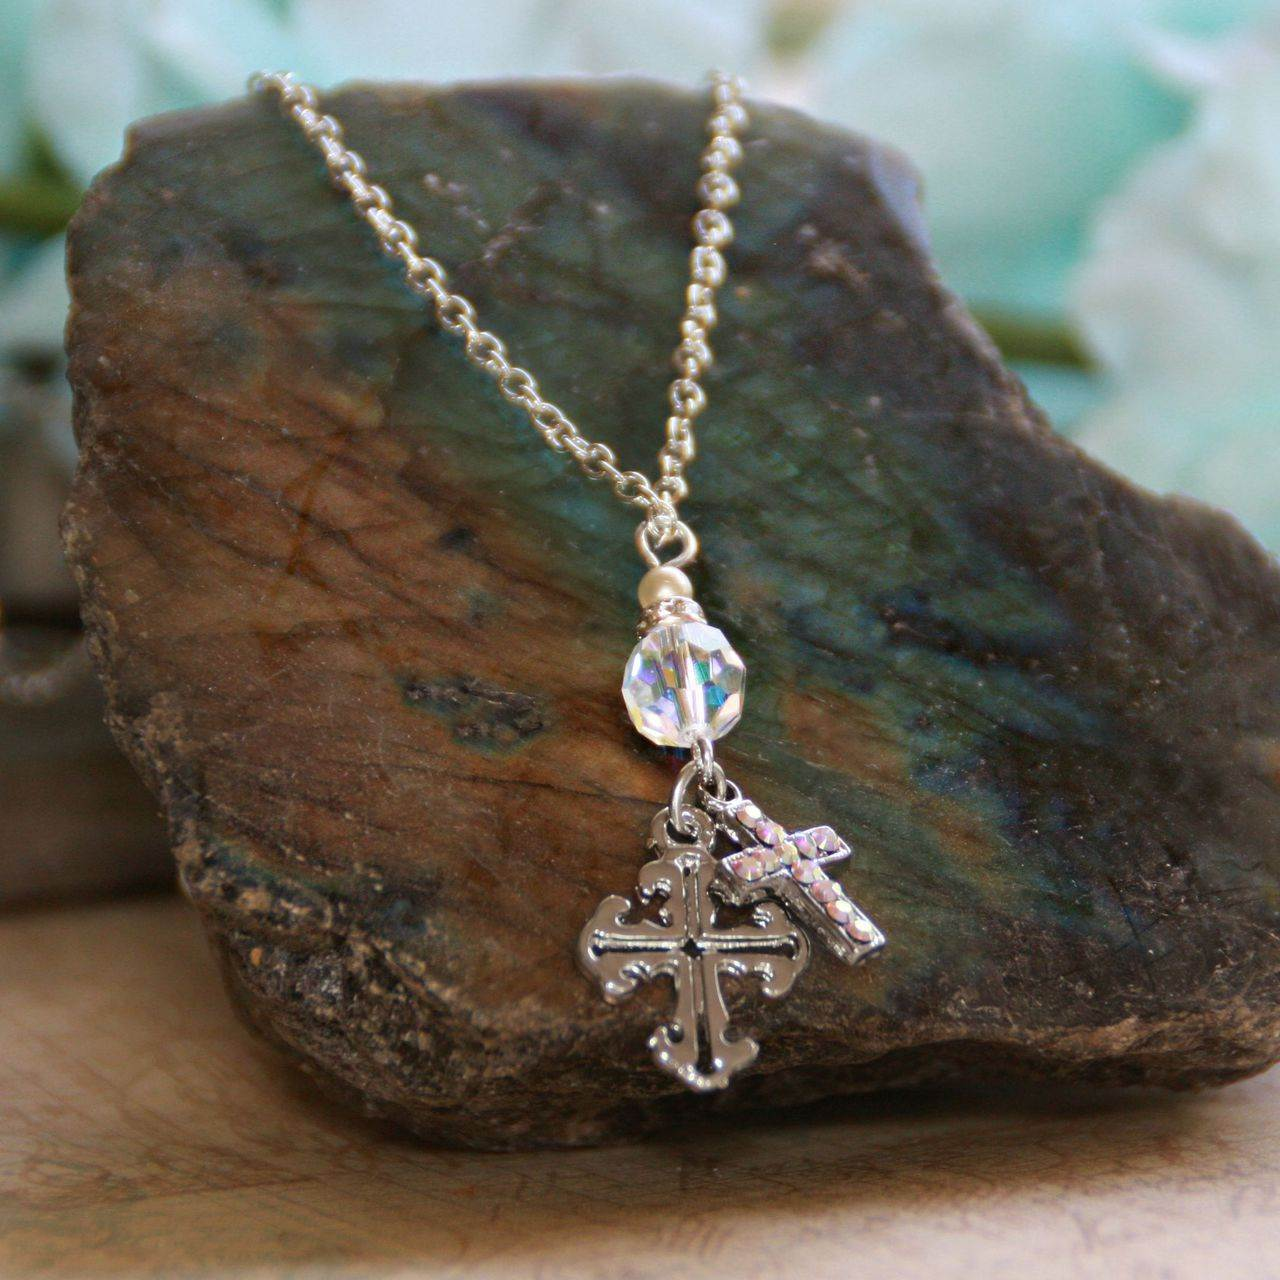 Crystal and Cross Necklace necklace, jewelry, cross necklace, religious necklace, crystal necklace,In-532